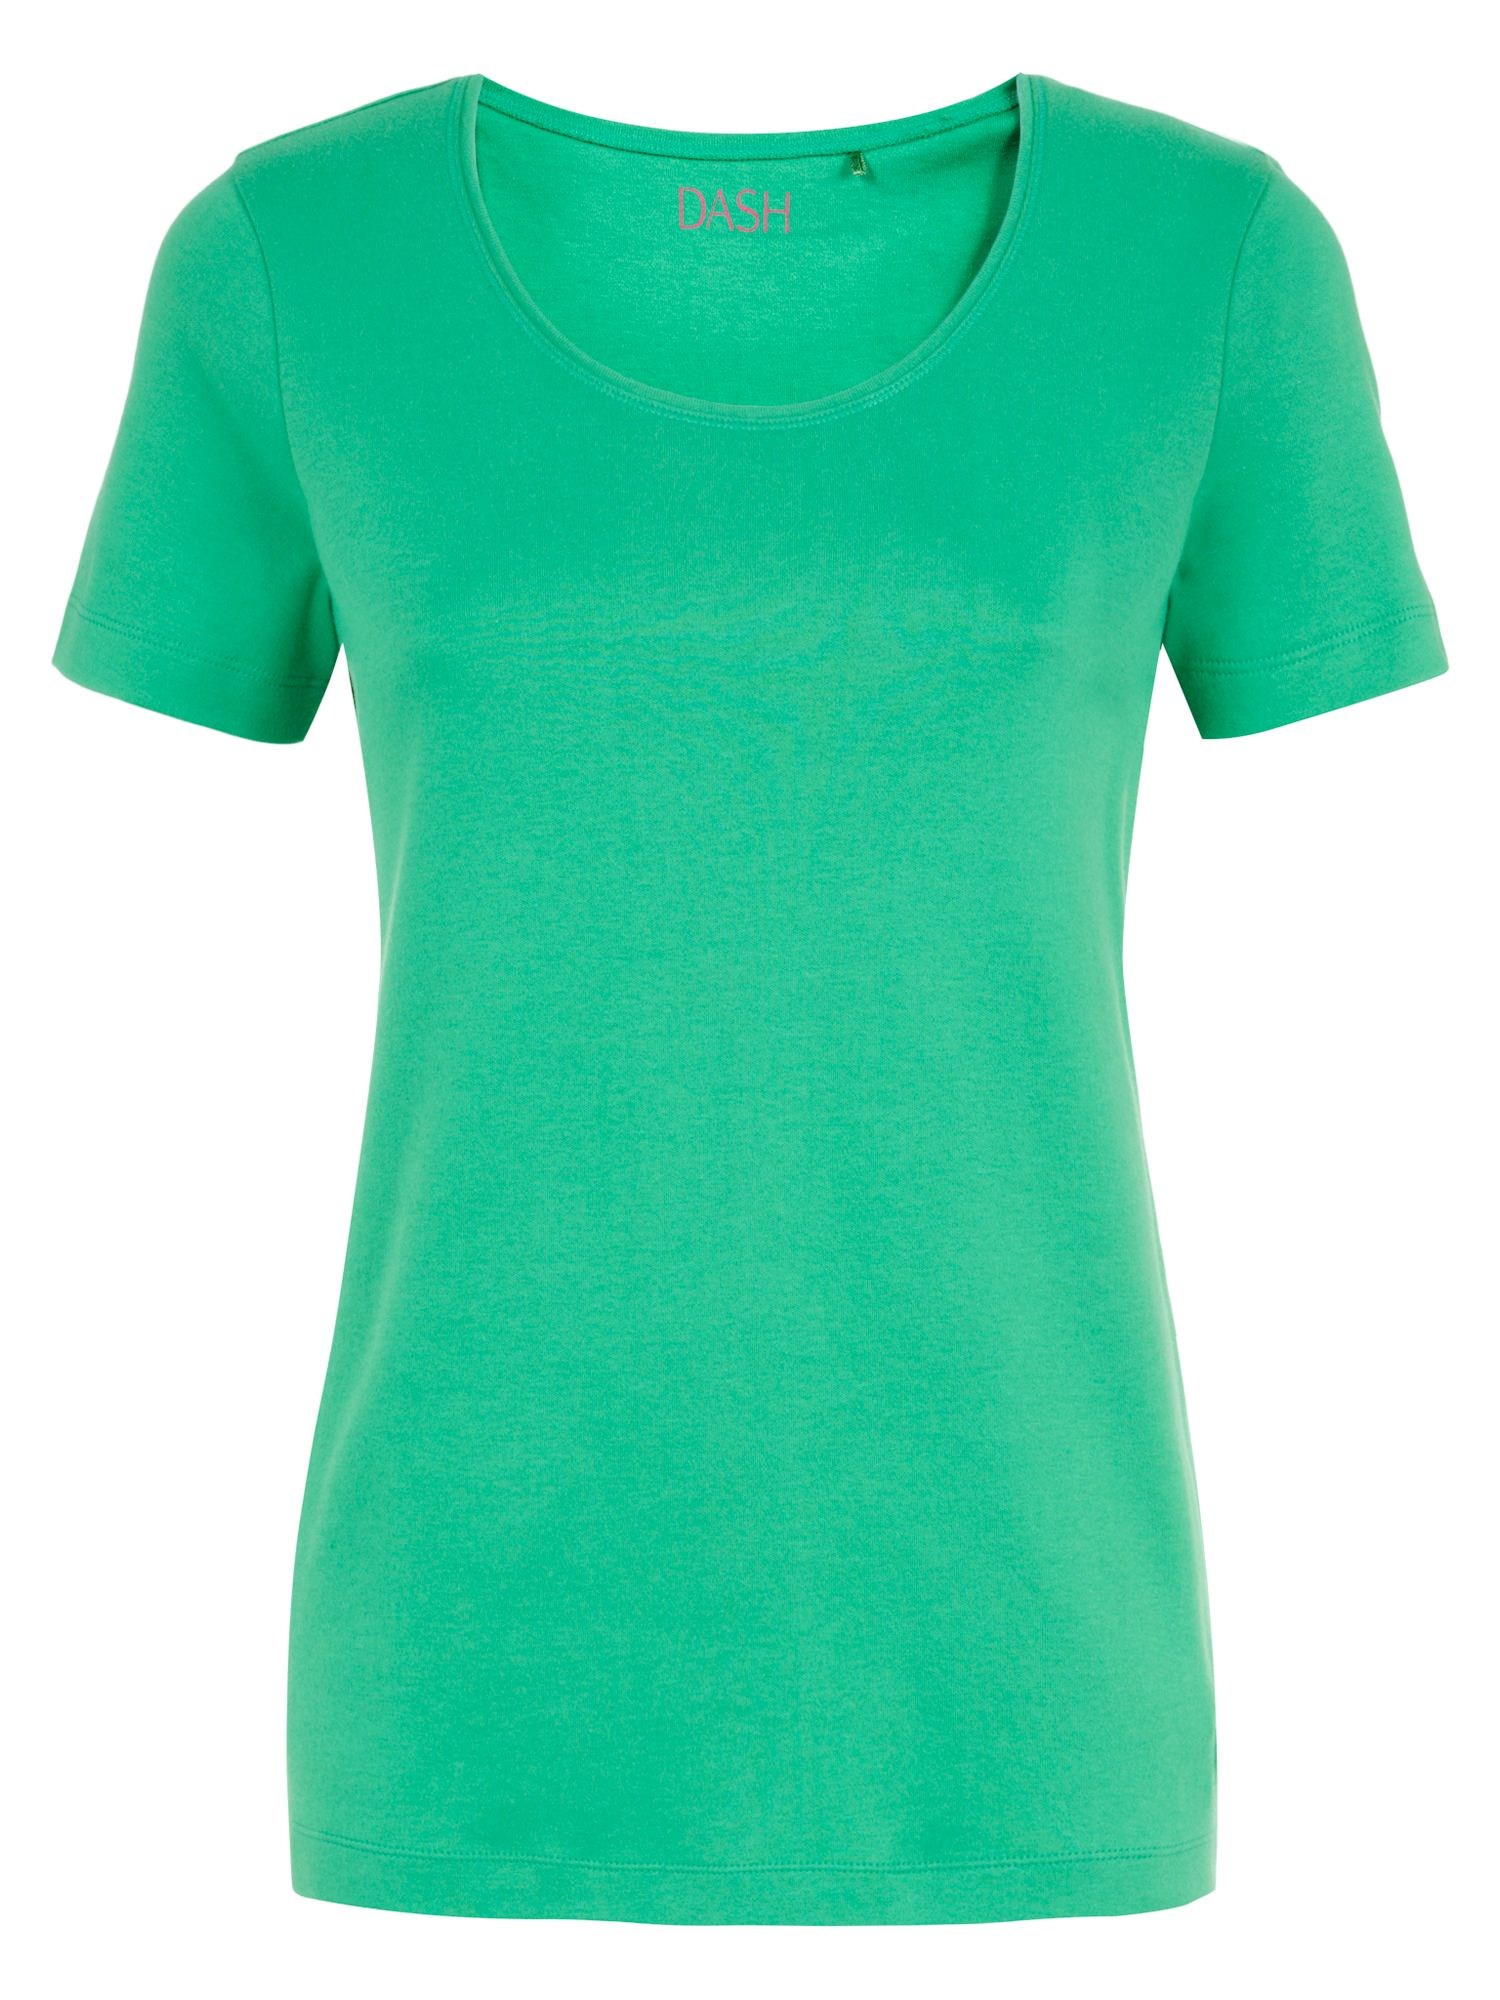 Green essential tee